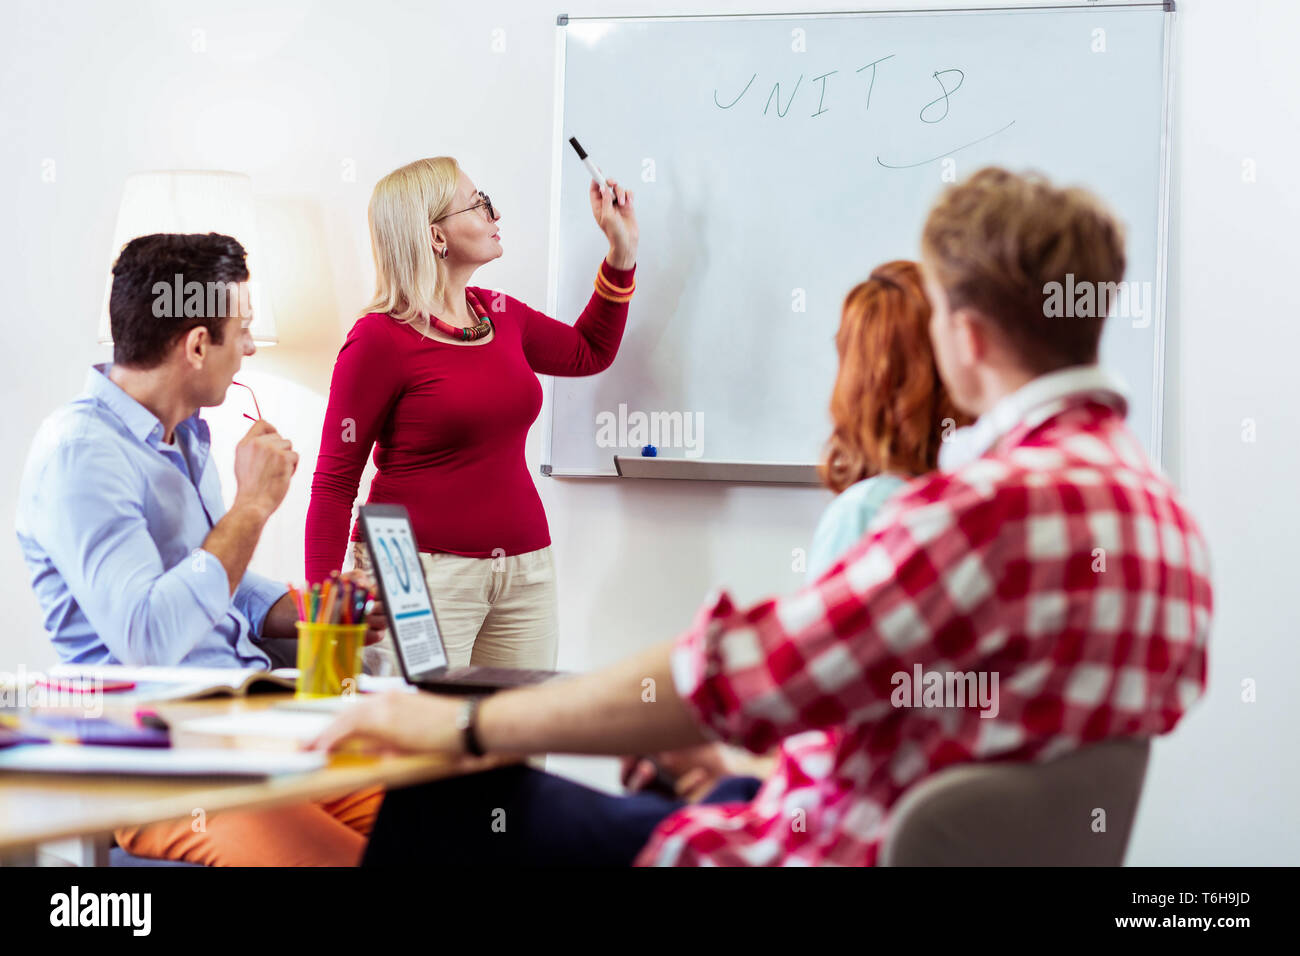 Nice pleasant woman pointing at the whiteboard - Stock Image